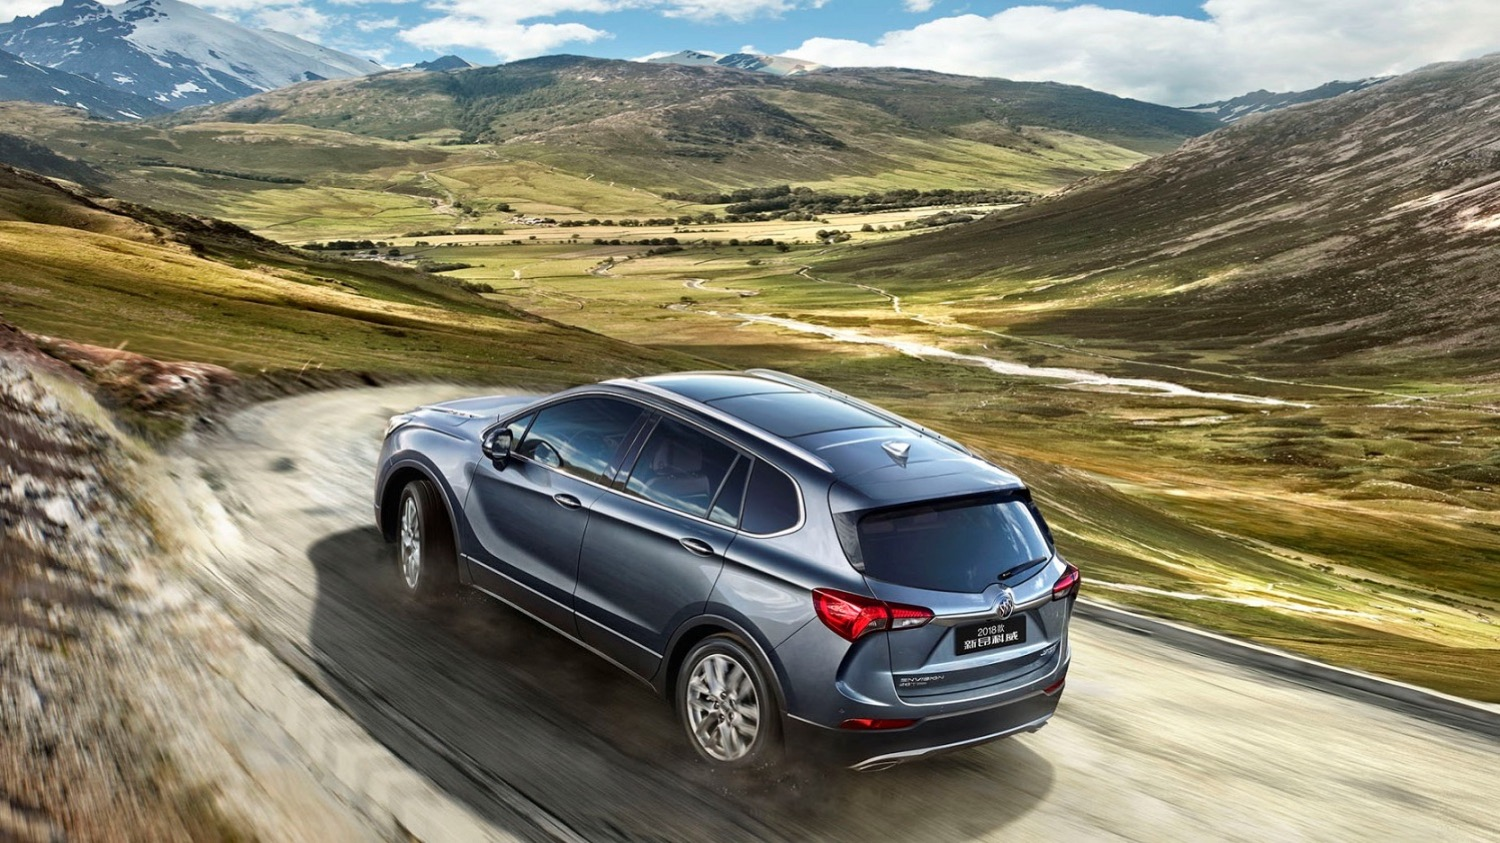 2019 Buick Envision Interactive Questions & Answers Gm